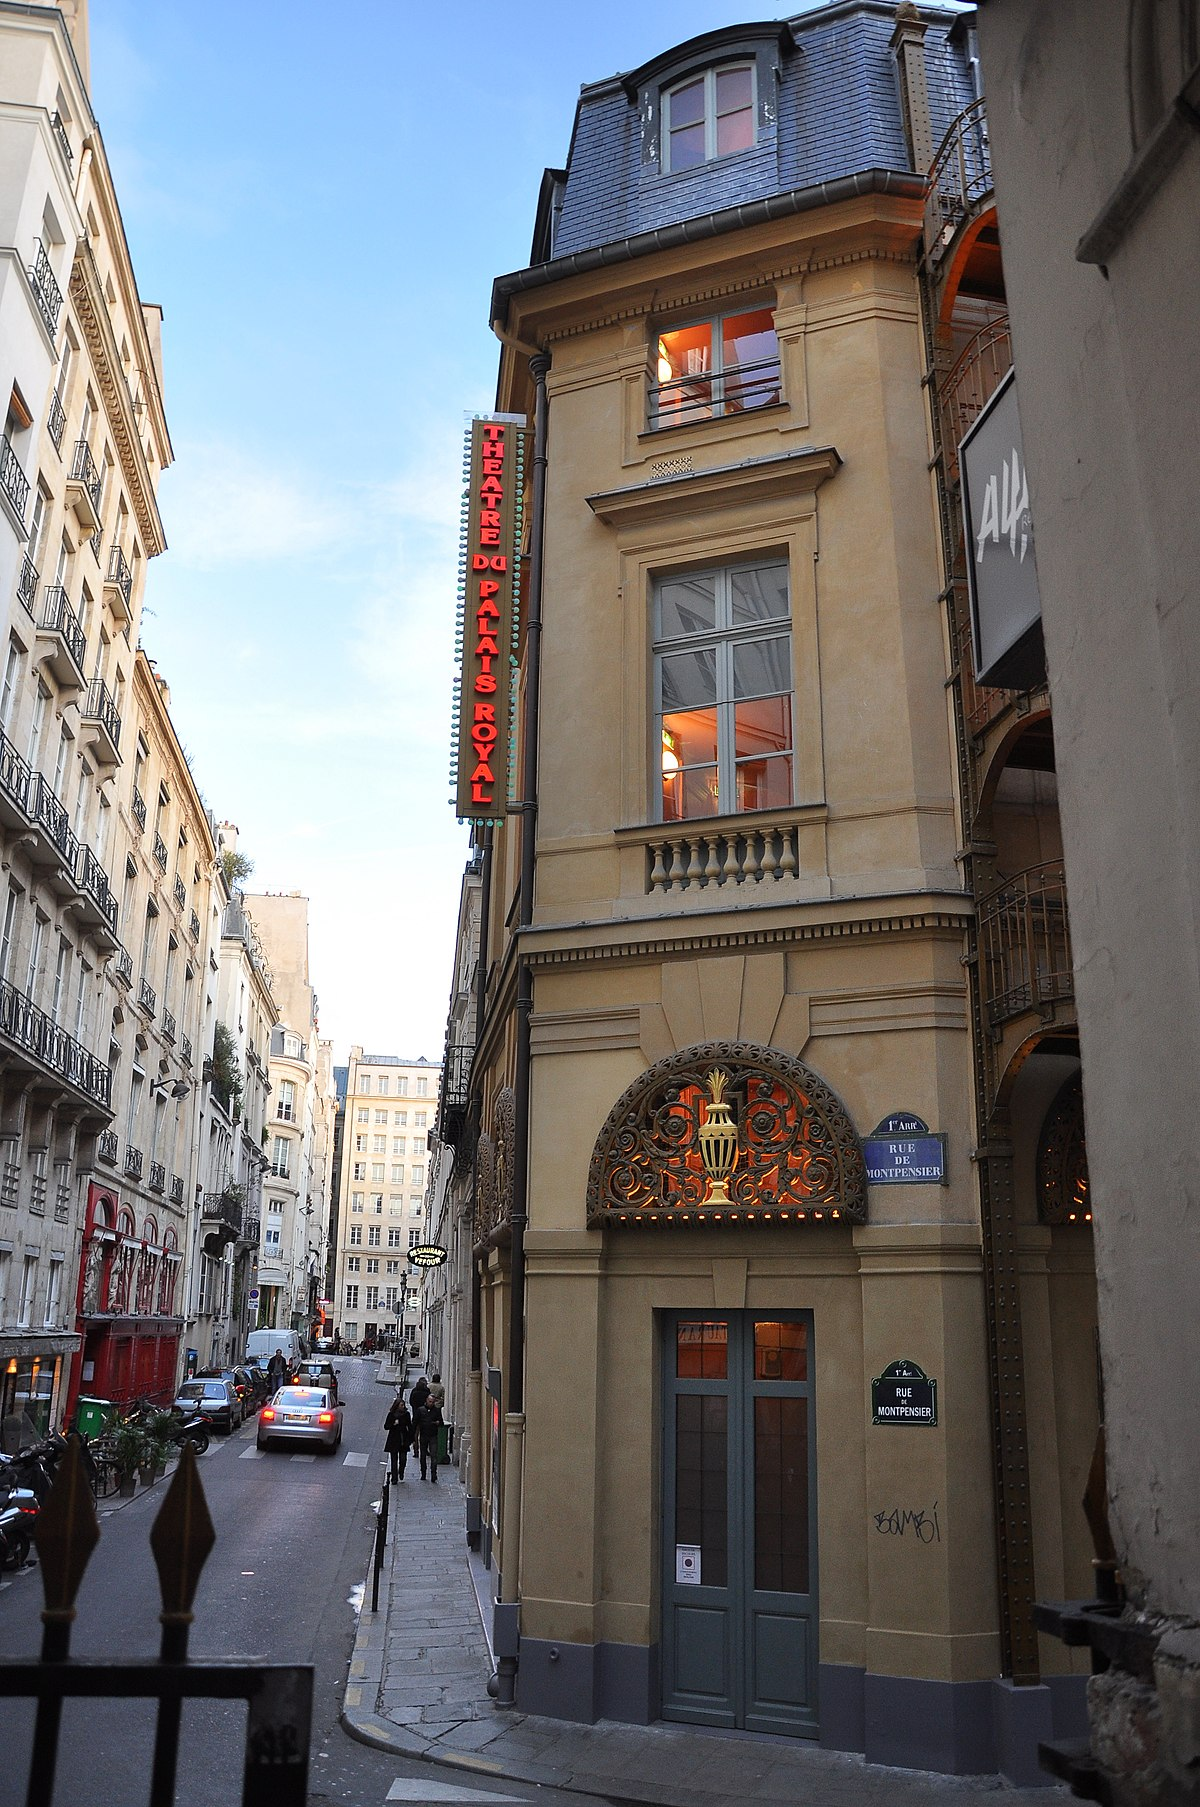 palais royal Palais royal is a chain of department stores that operates throughout the south it is owned by stage stores, which is one of the leading regional department store retailers and operates more than 660 stores in over 30 states.